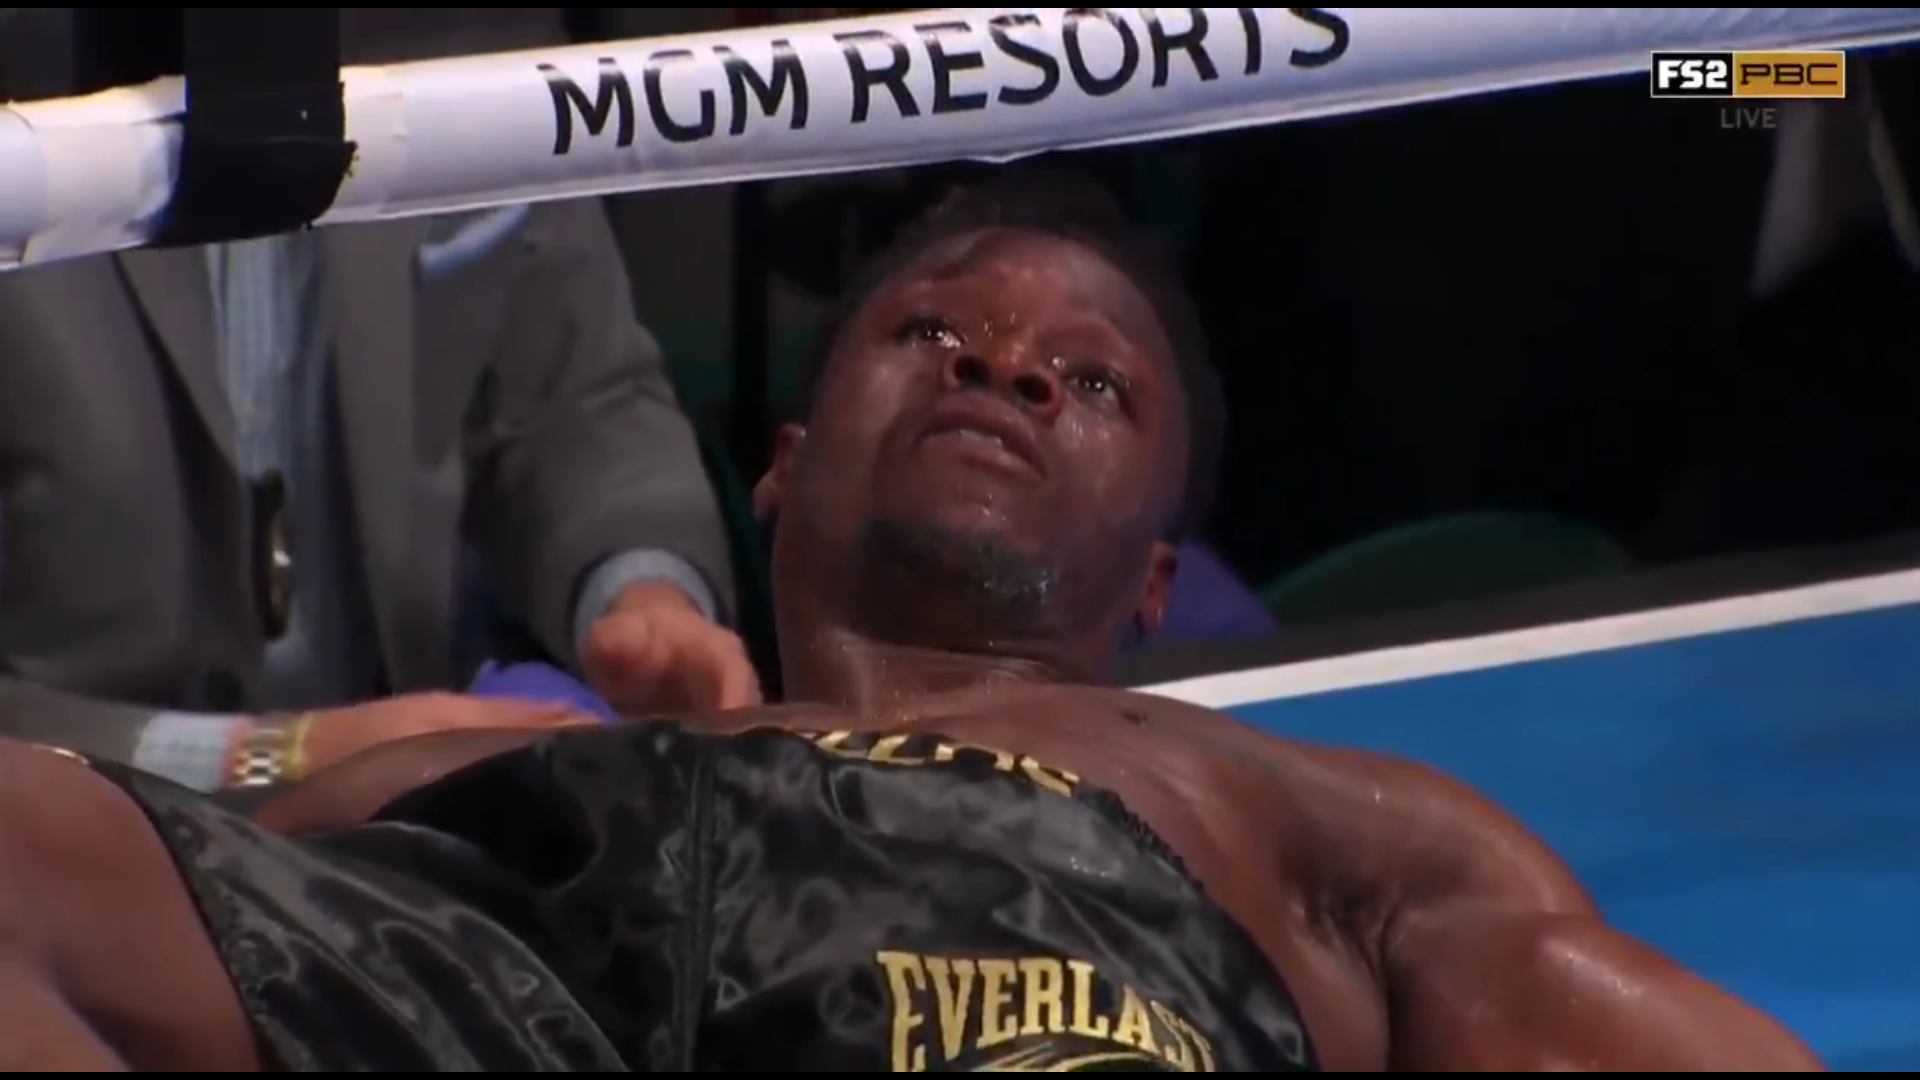 VIDEO: Deontay Wilder's brother Marsellos Wilder gets KNOCKED OUT by MMA fighter - Wilder